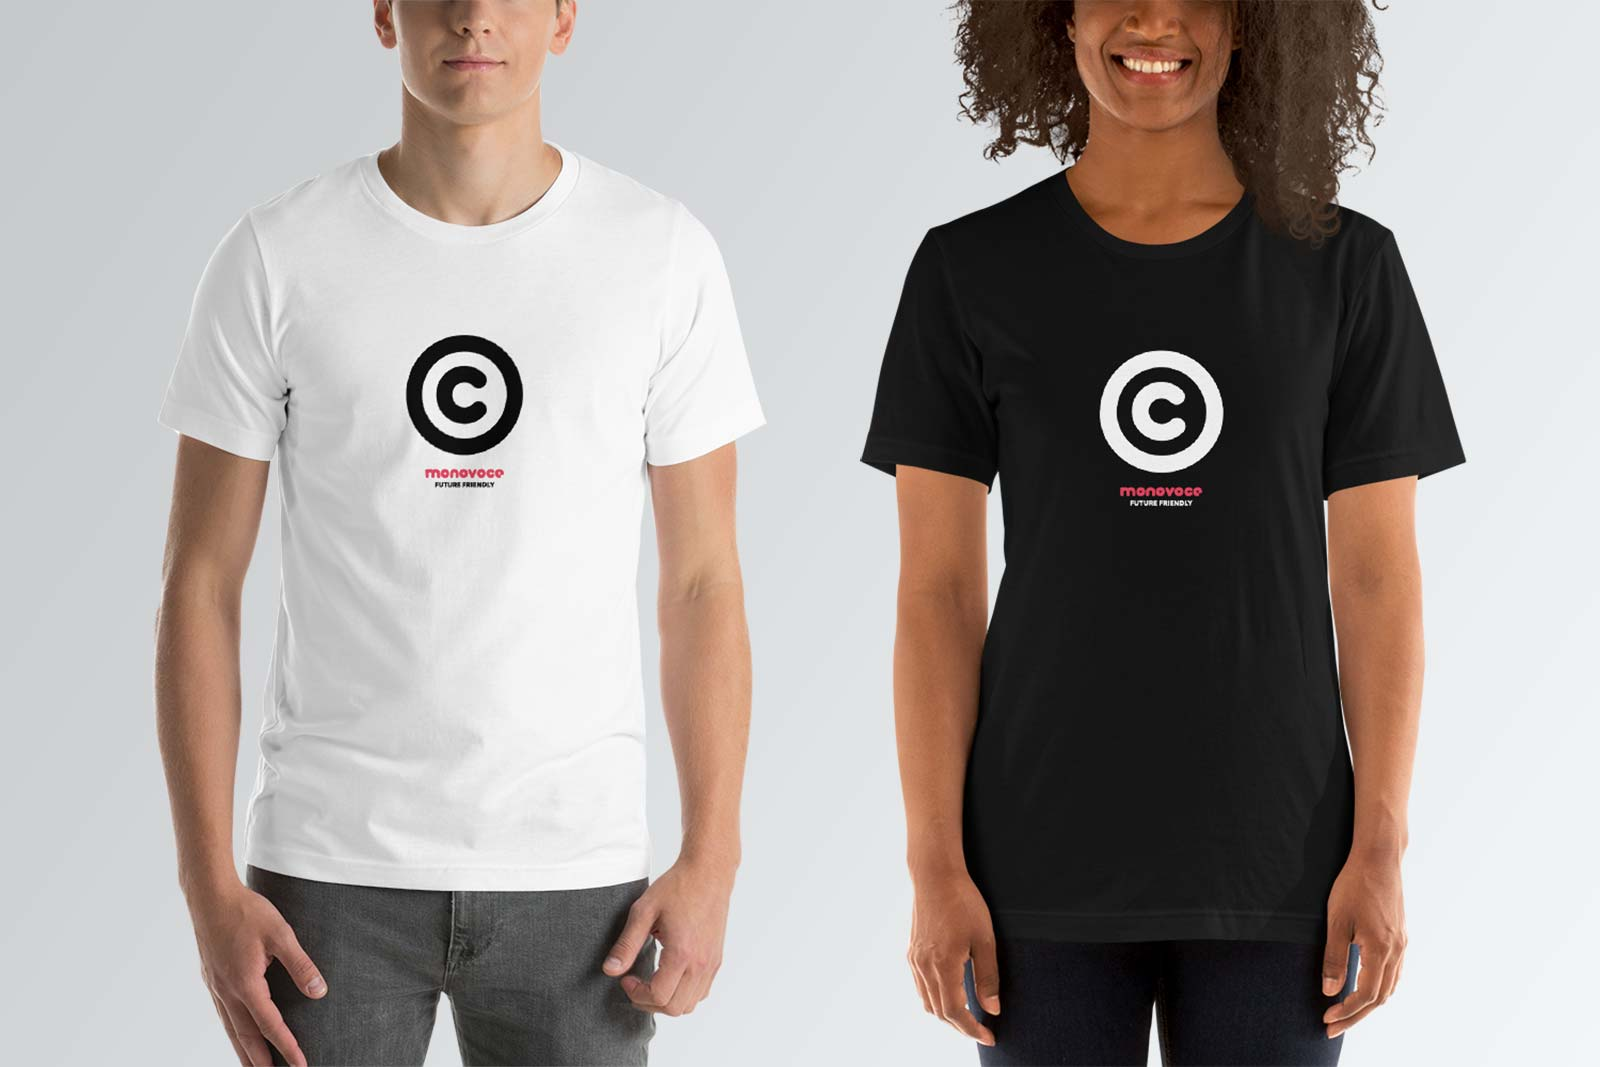 Copyright t-shirt for men in black and white